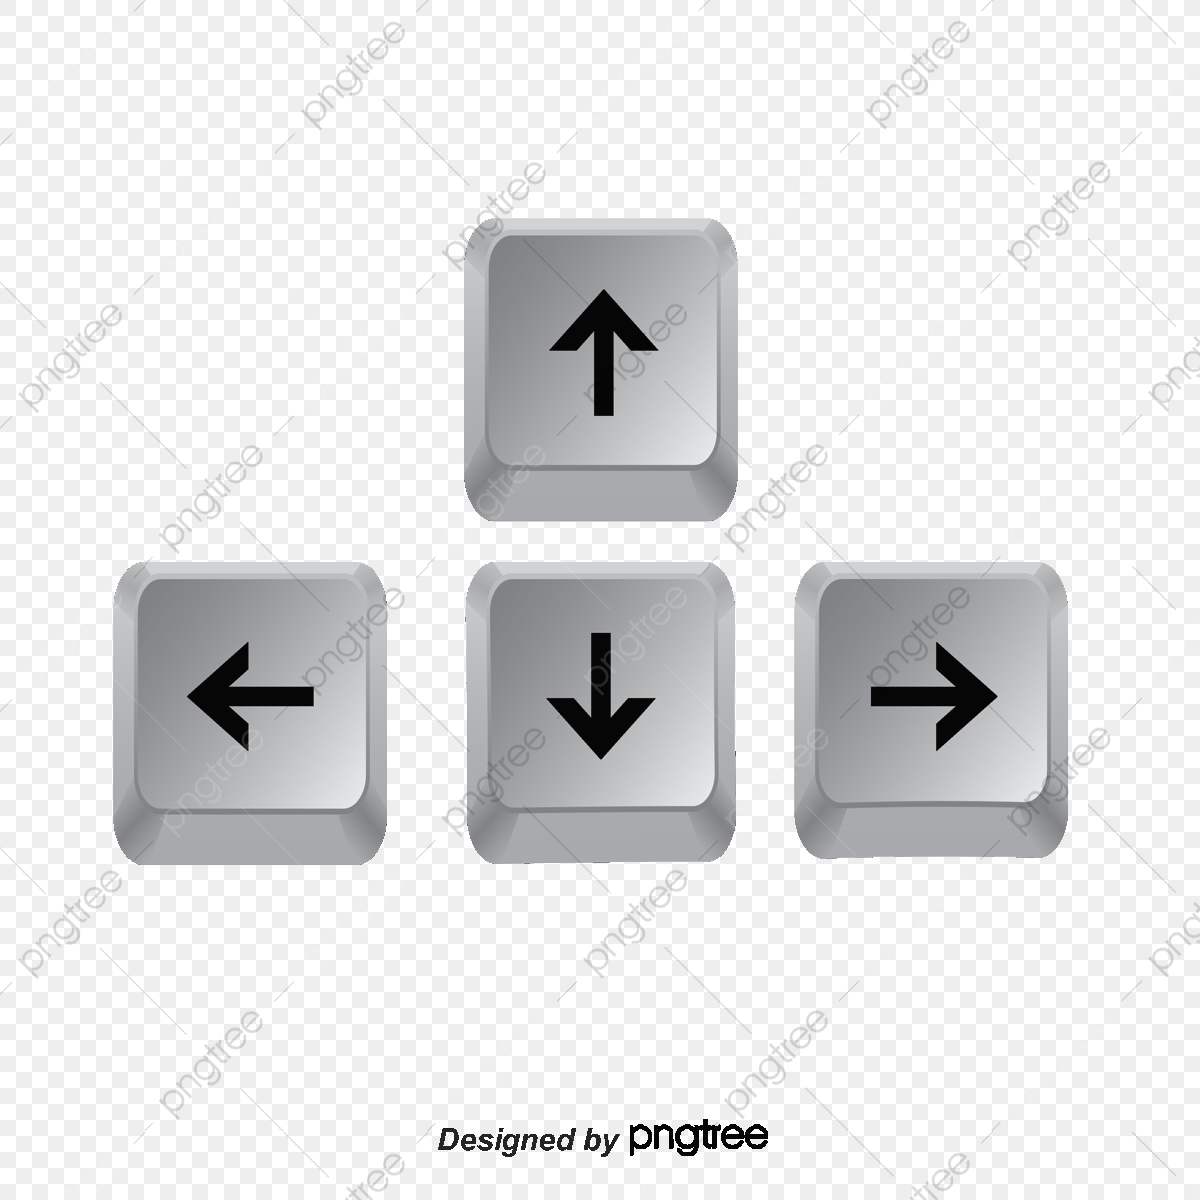 Keyboard Arrow Keyboard Keyboard Buttons Vector Png Transparent Clipart Image And Psd File For Free Download